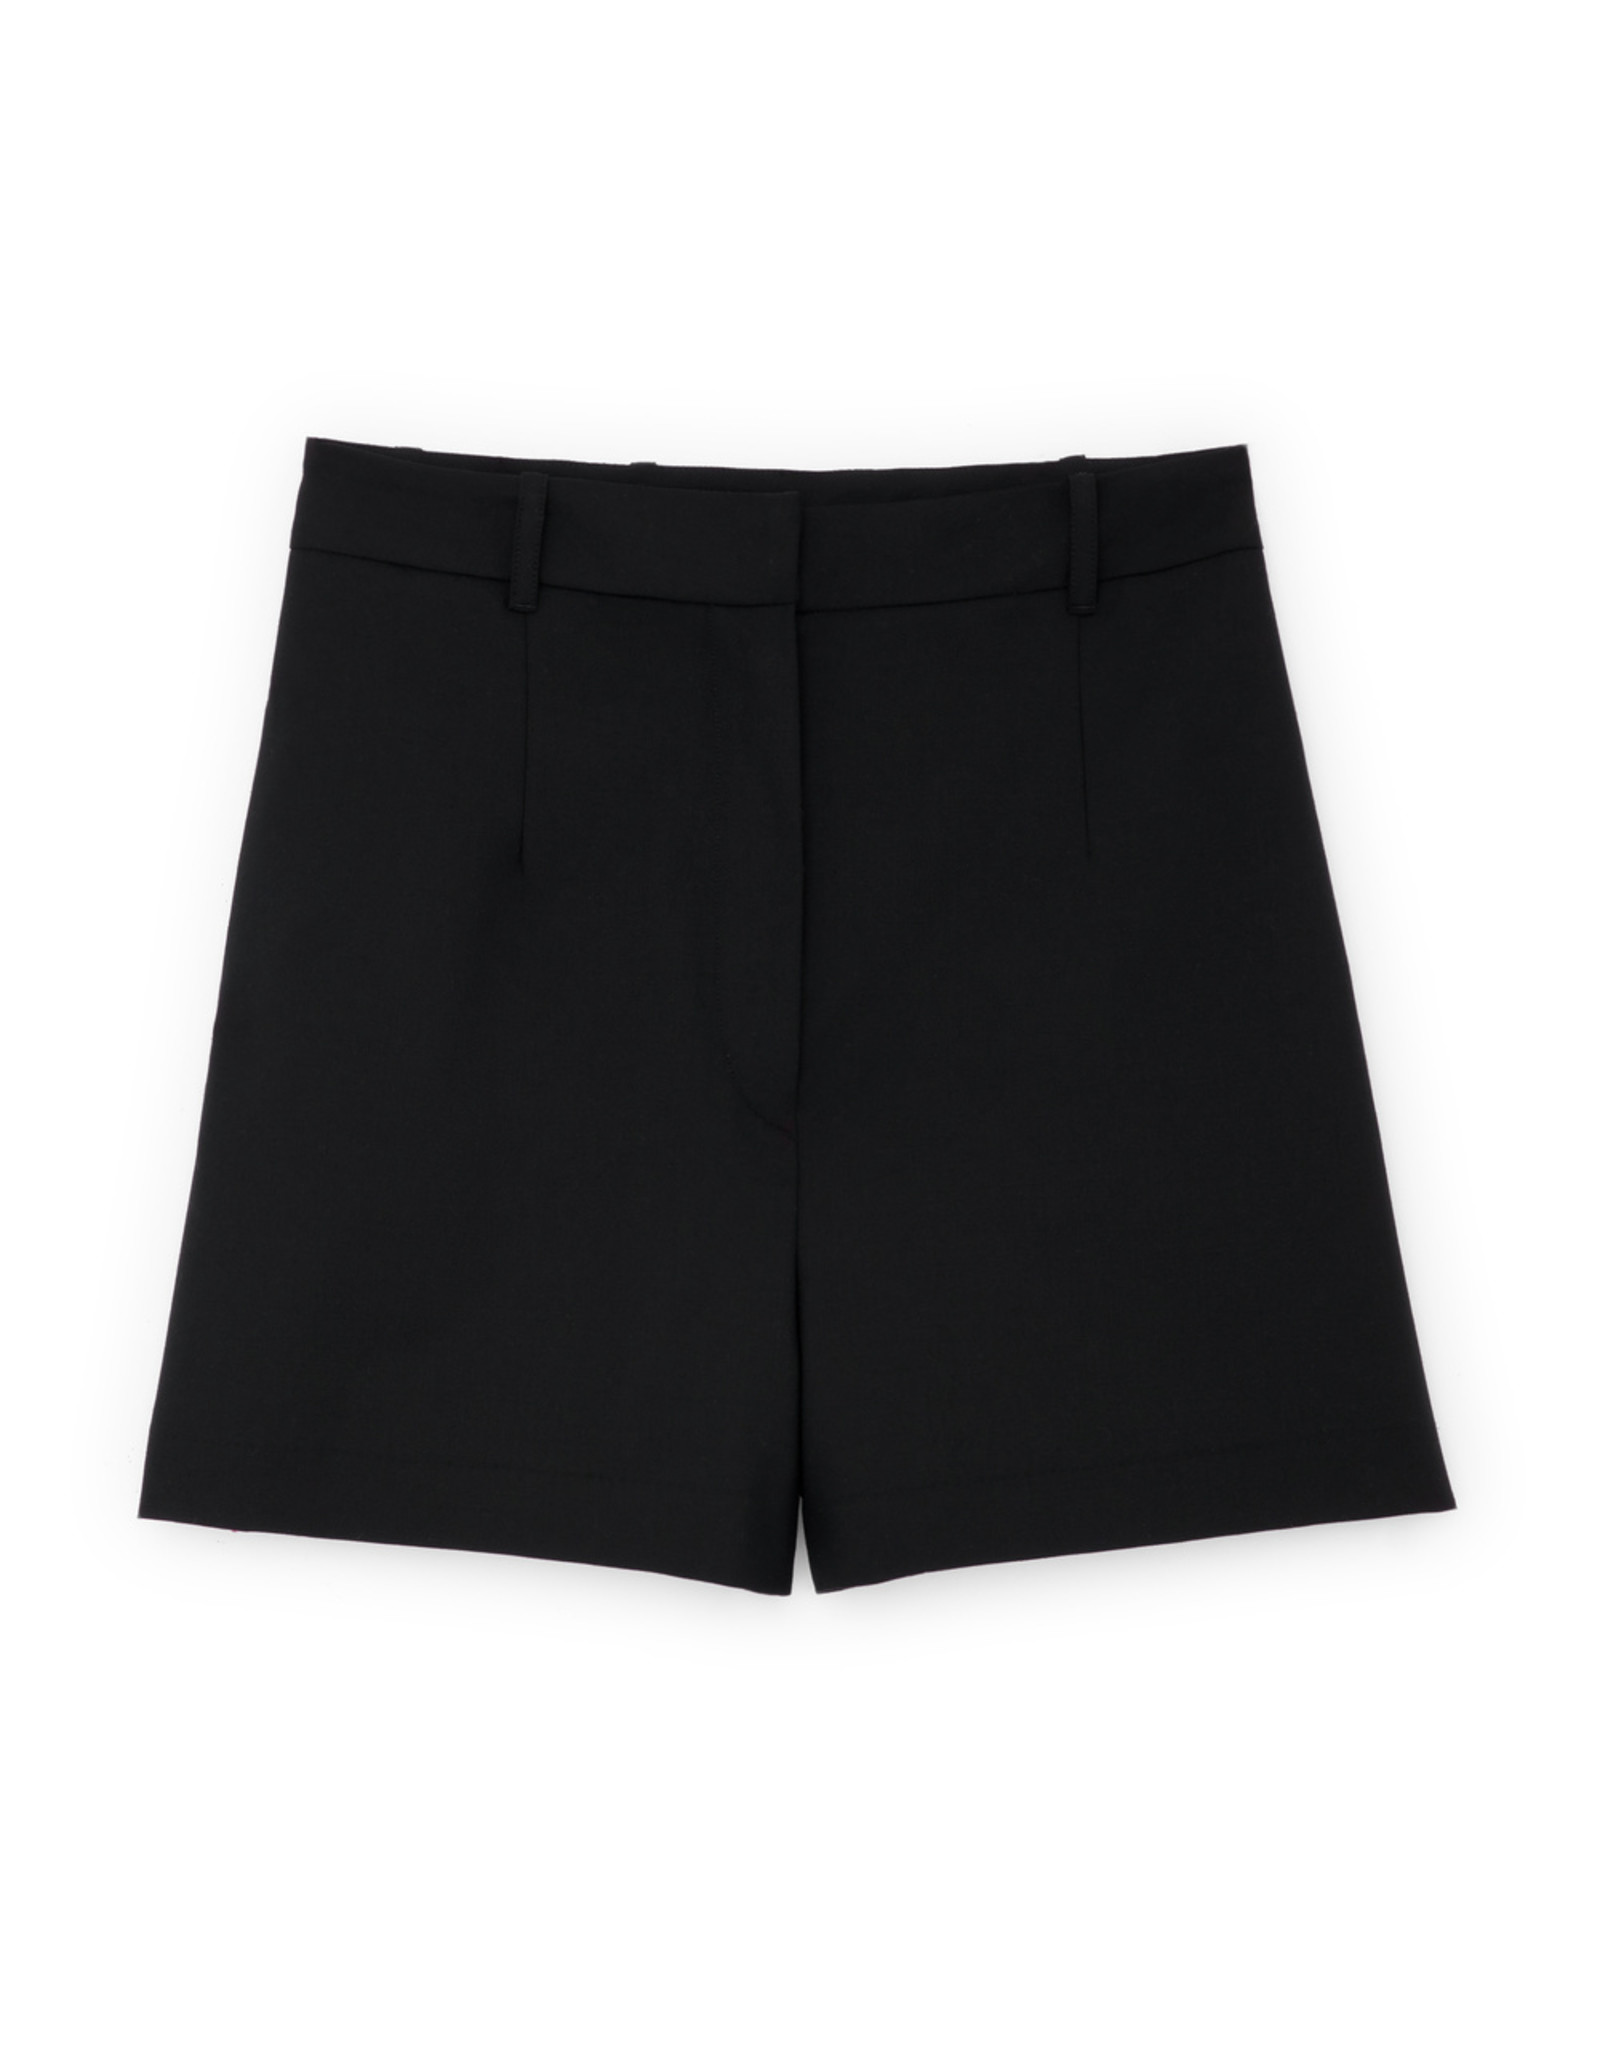 G. Label G. Label Anthony Tailored Shorts (Color: Black, Size: 6)